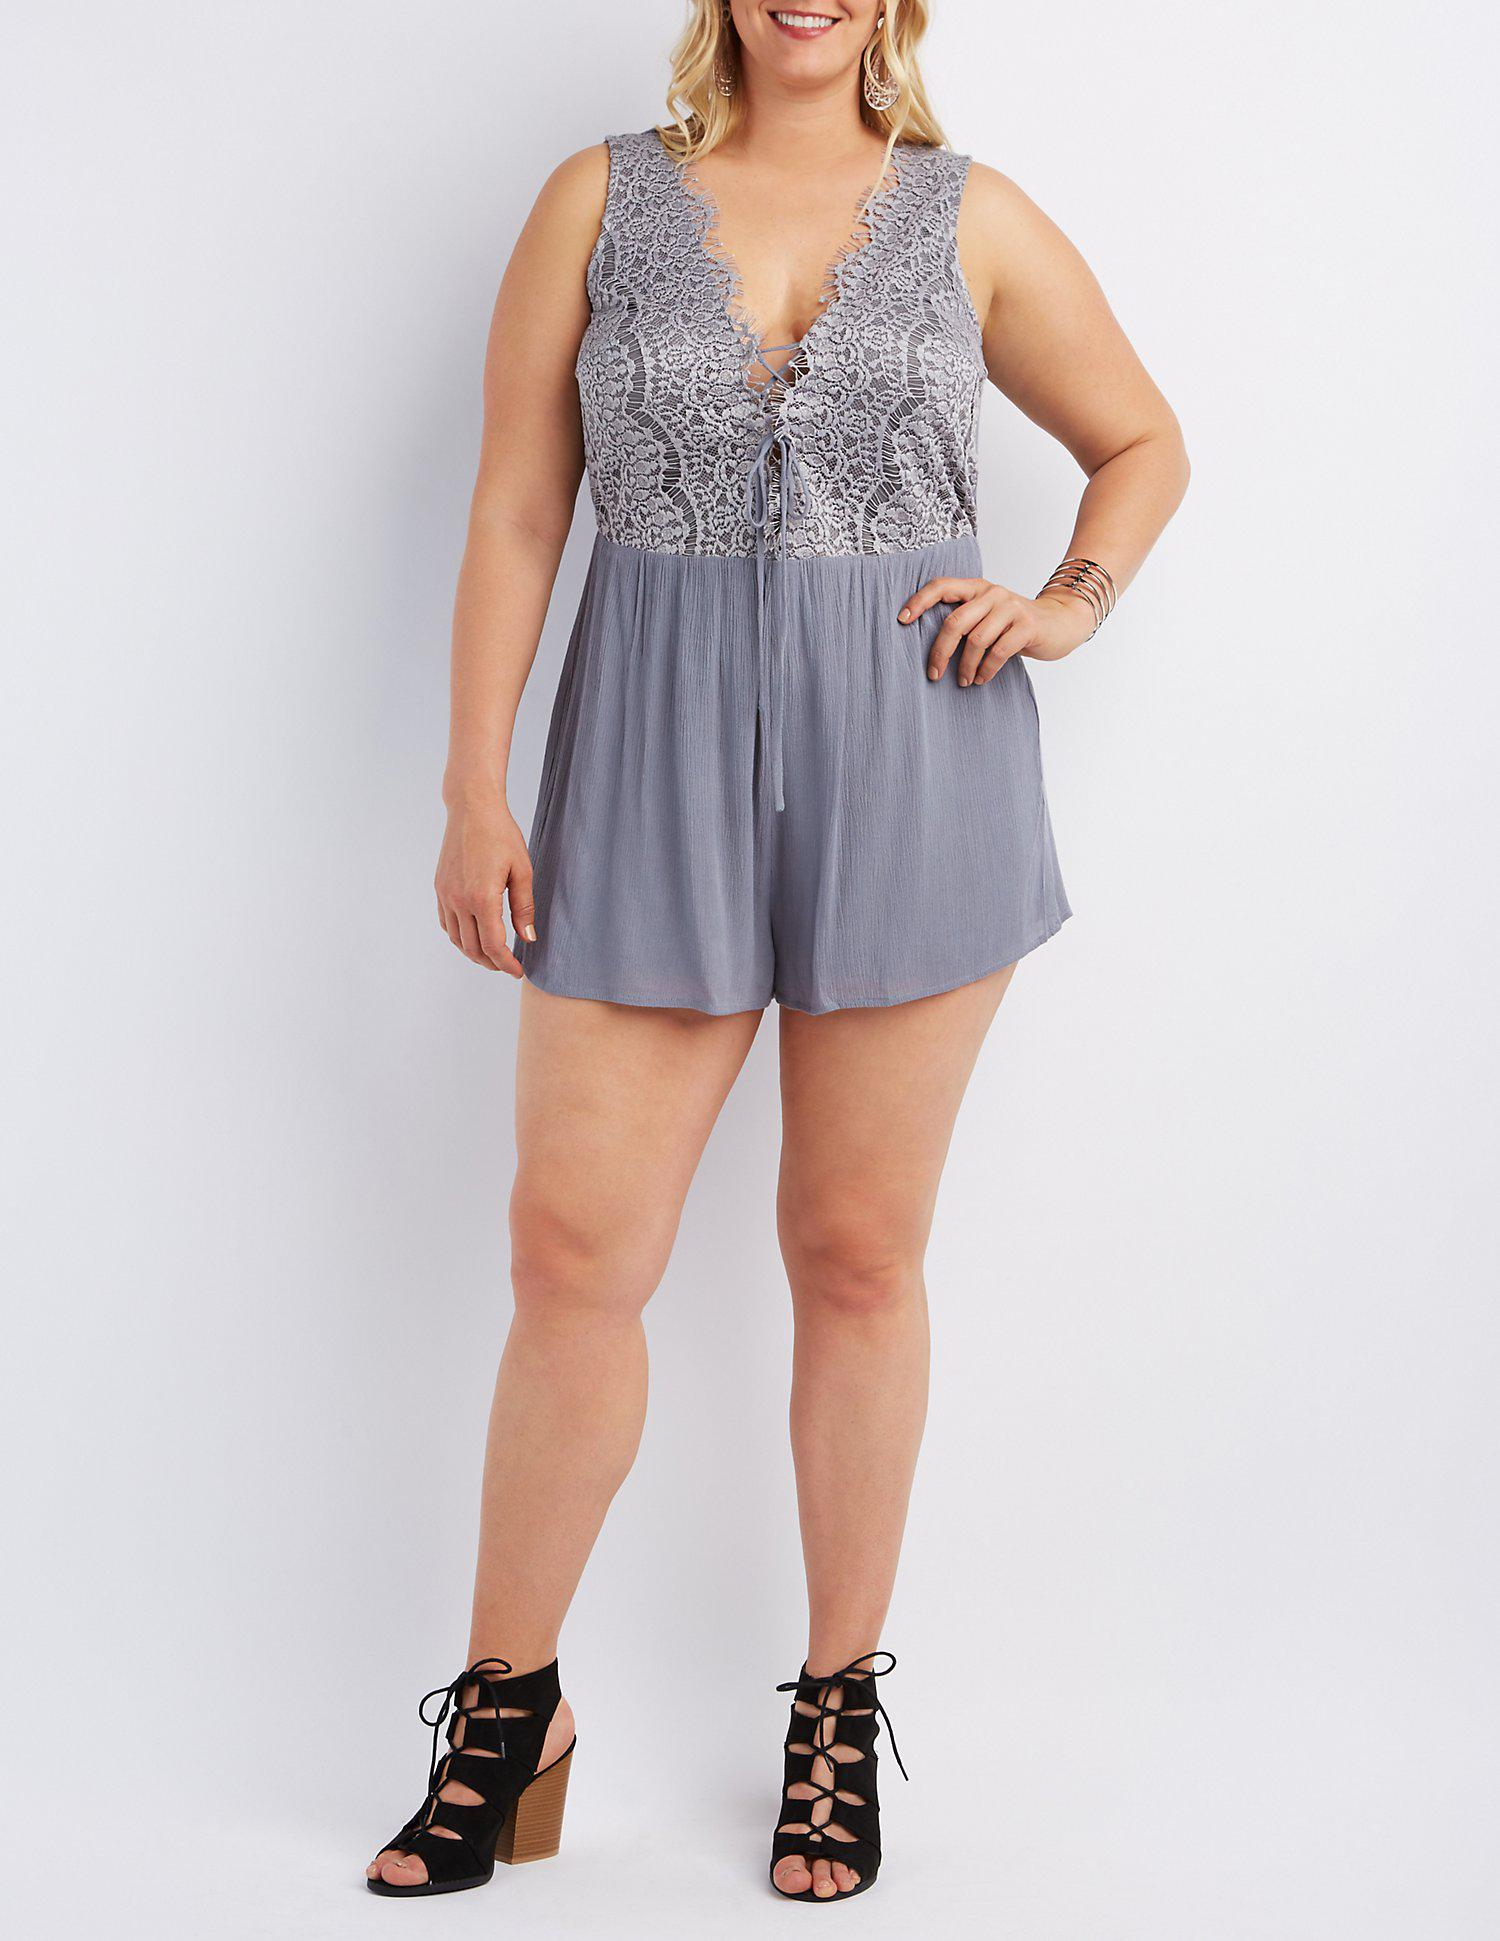 f9eea2c108a Lyst - Charlotte Russe Plus Size Lace Bodice Romper in Gray